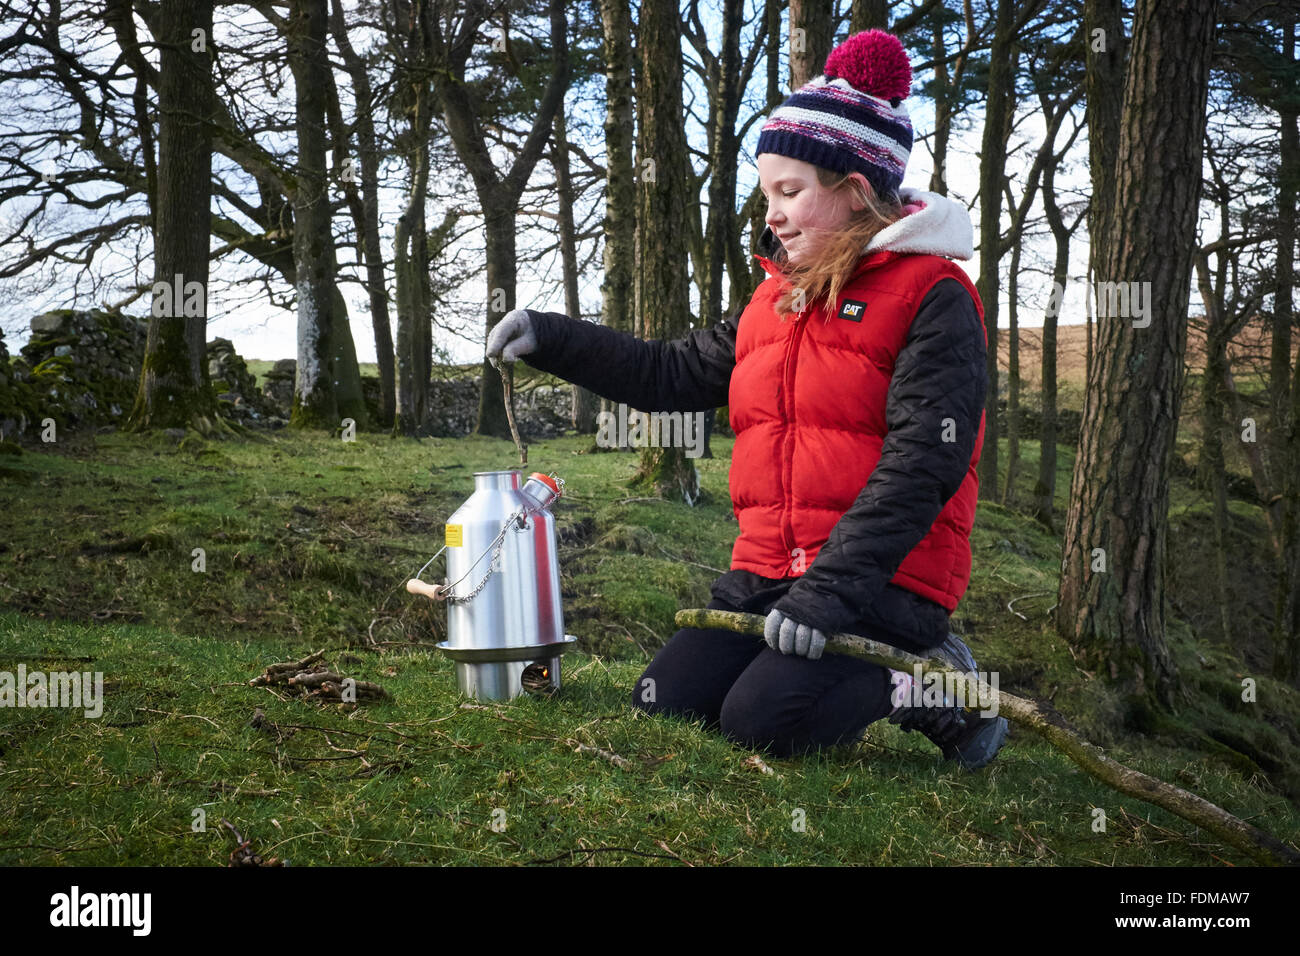 A girl places a stick into a Kelly Kettle wood stove outdoors in the woods - Stock Image